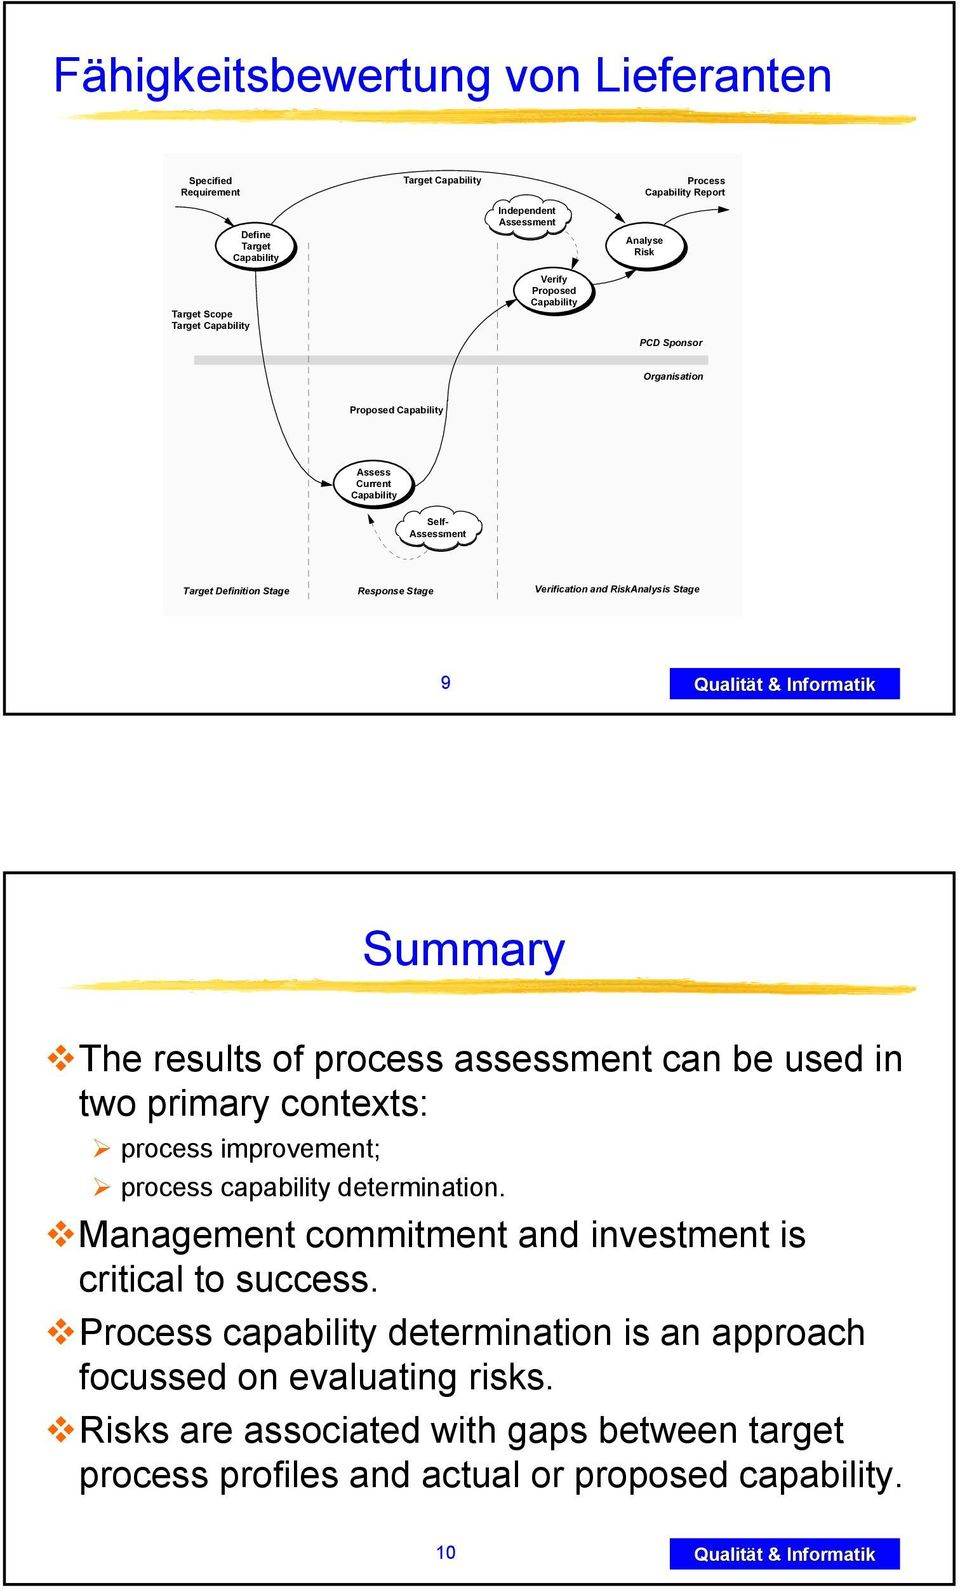 process assessment can be used in two primary contexts: process improvement; process capability determination. Management commitment and investment is critical to success.